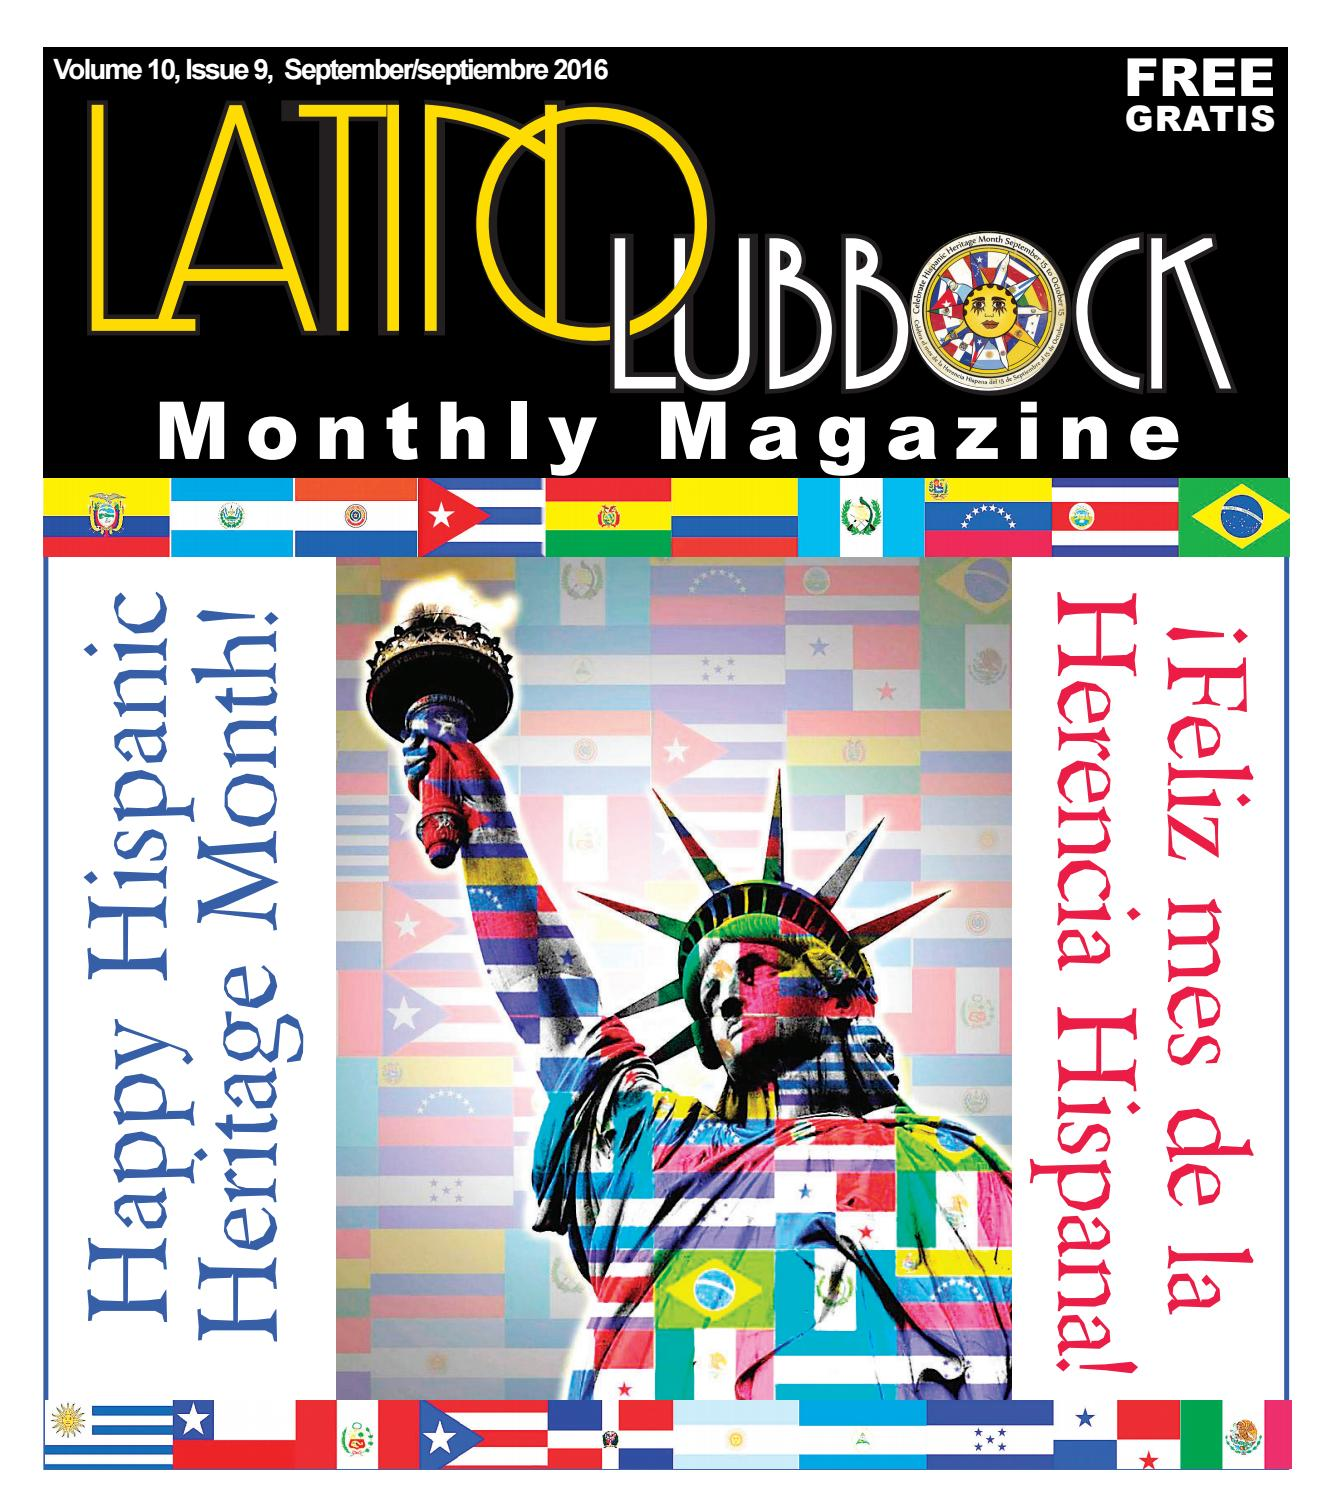 September latino lubbock vol 10 issue 9 by christy martinez garcia september latino lubbock vol 10 issue 9 by christy martinez garcia issuu aiddatafo Gallery